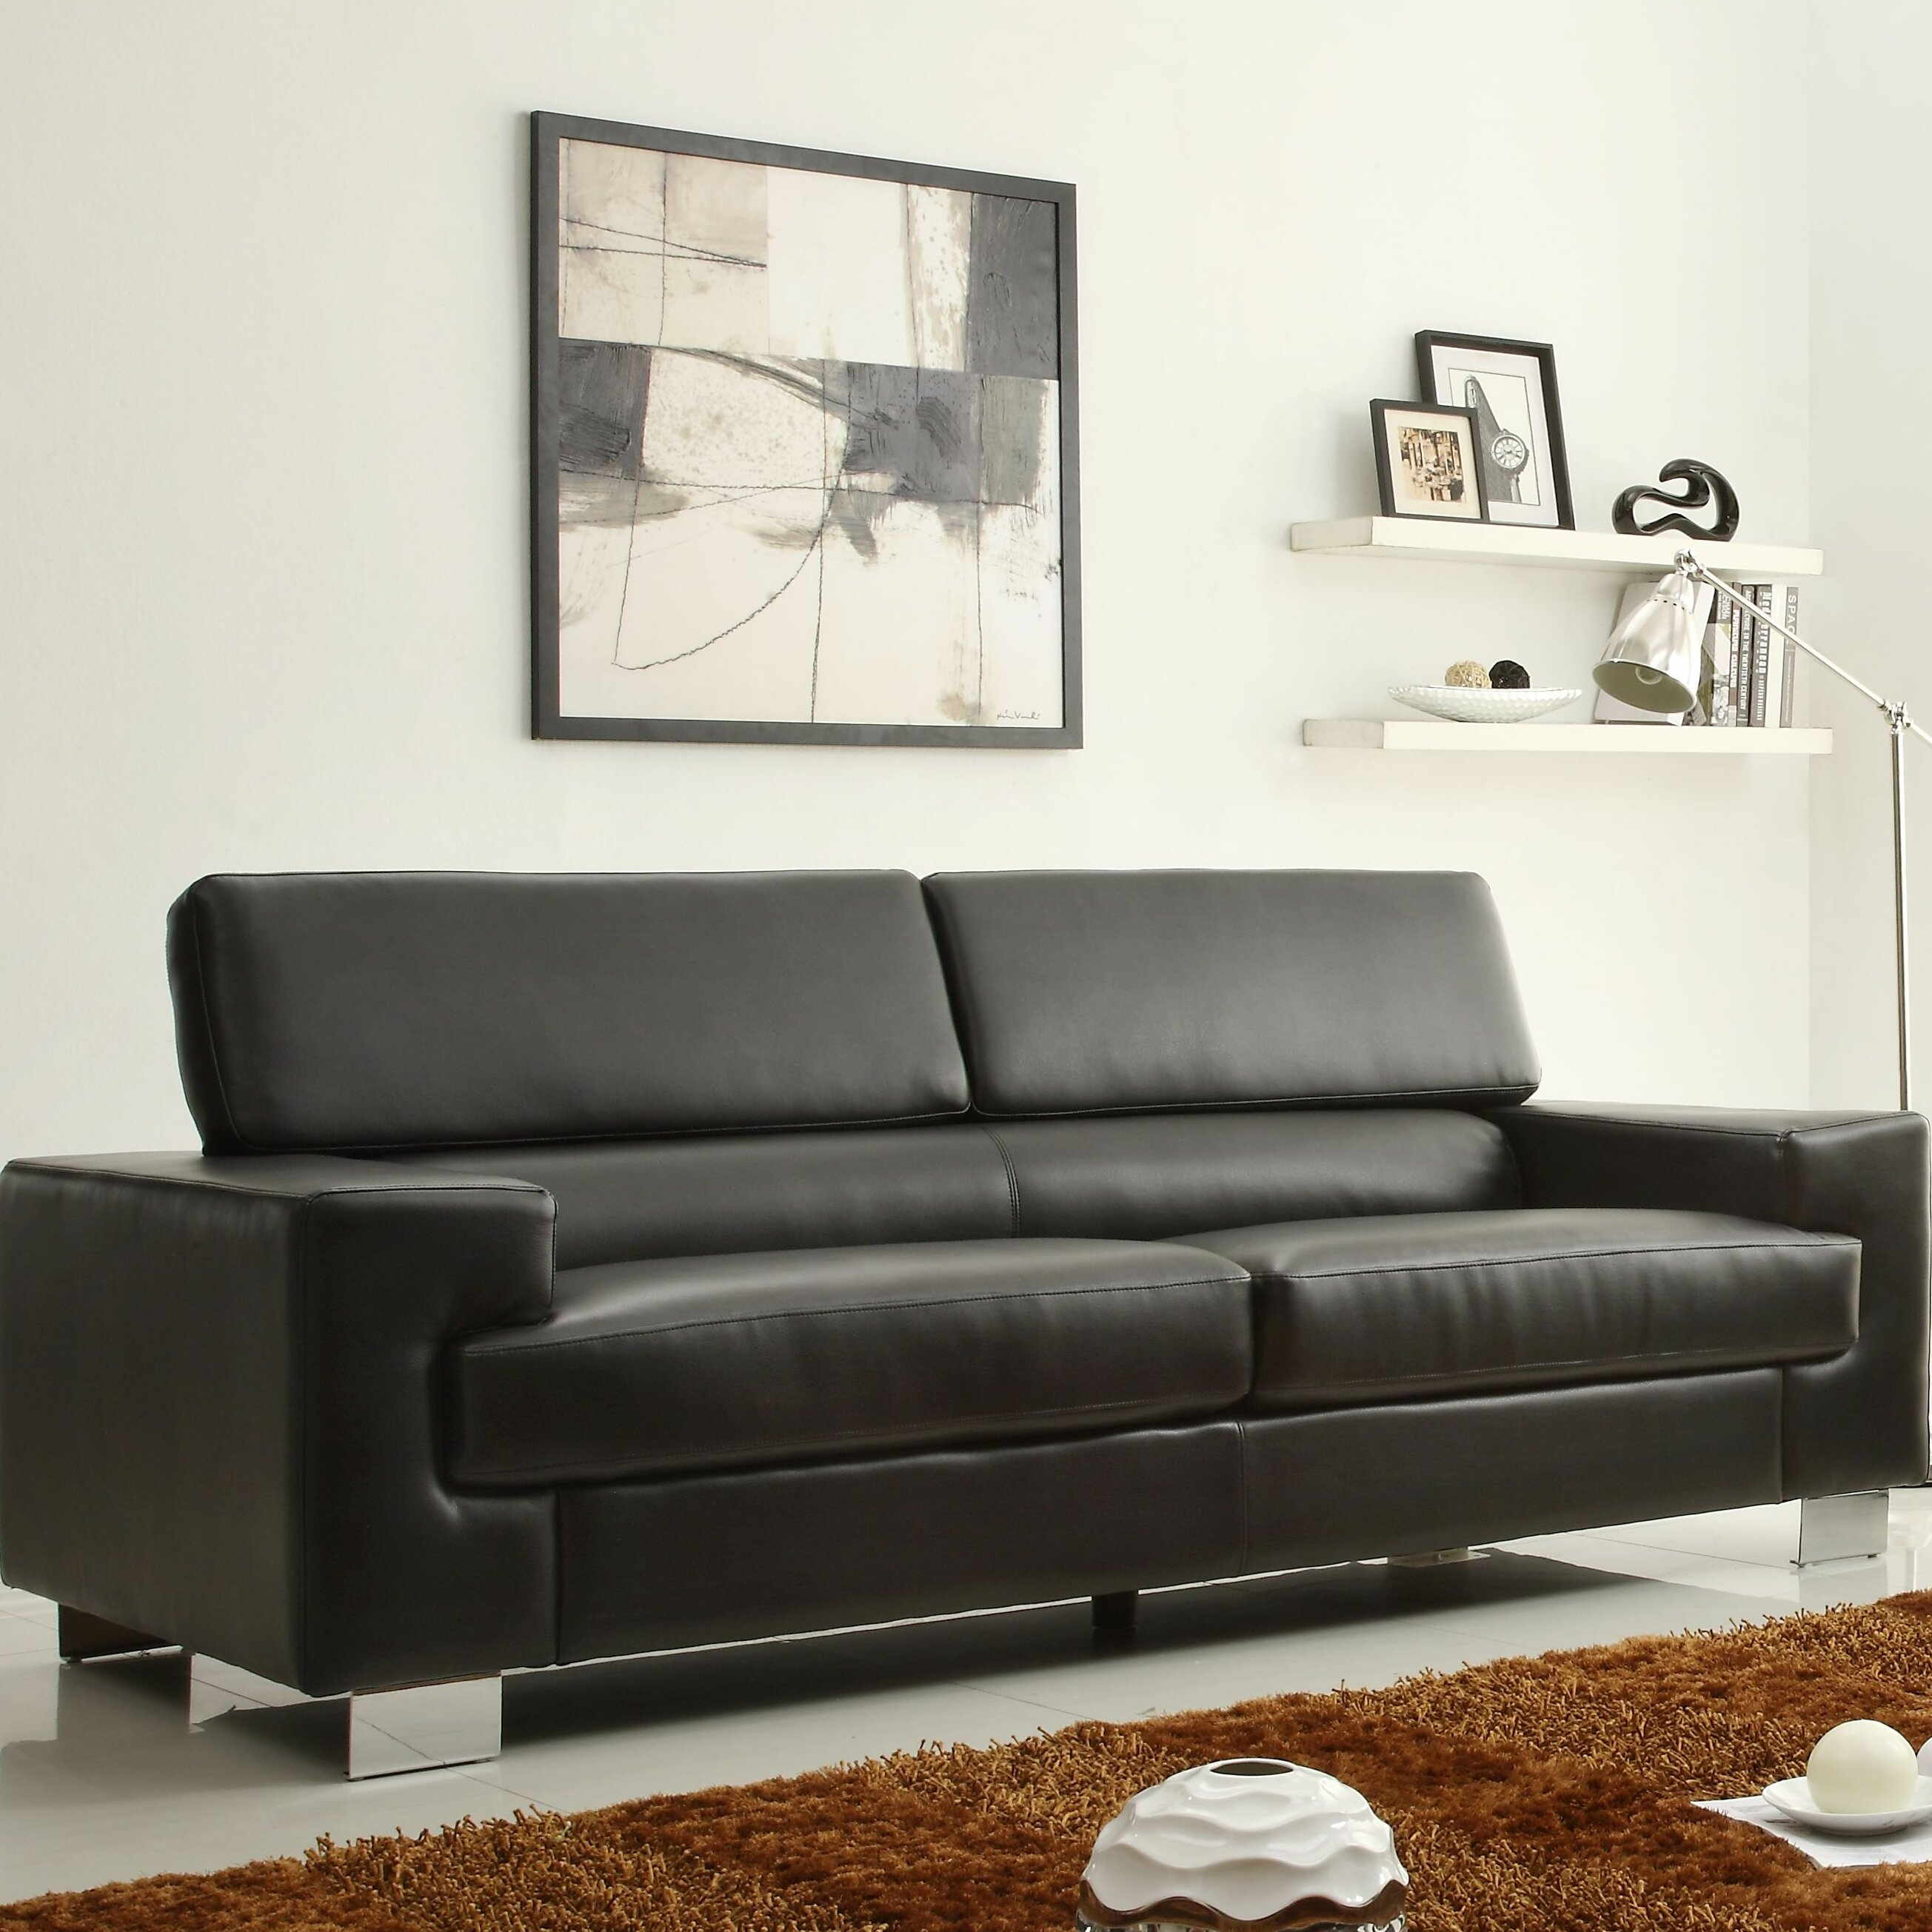 Wayfair Living Room Furniture Woodhaven Hill Vernon Living Room Collection Reviews Wayfair